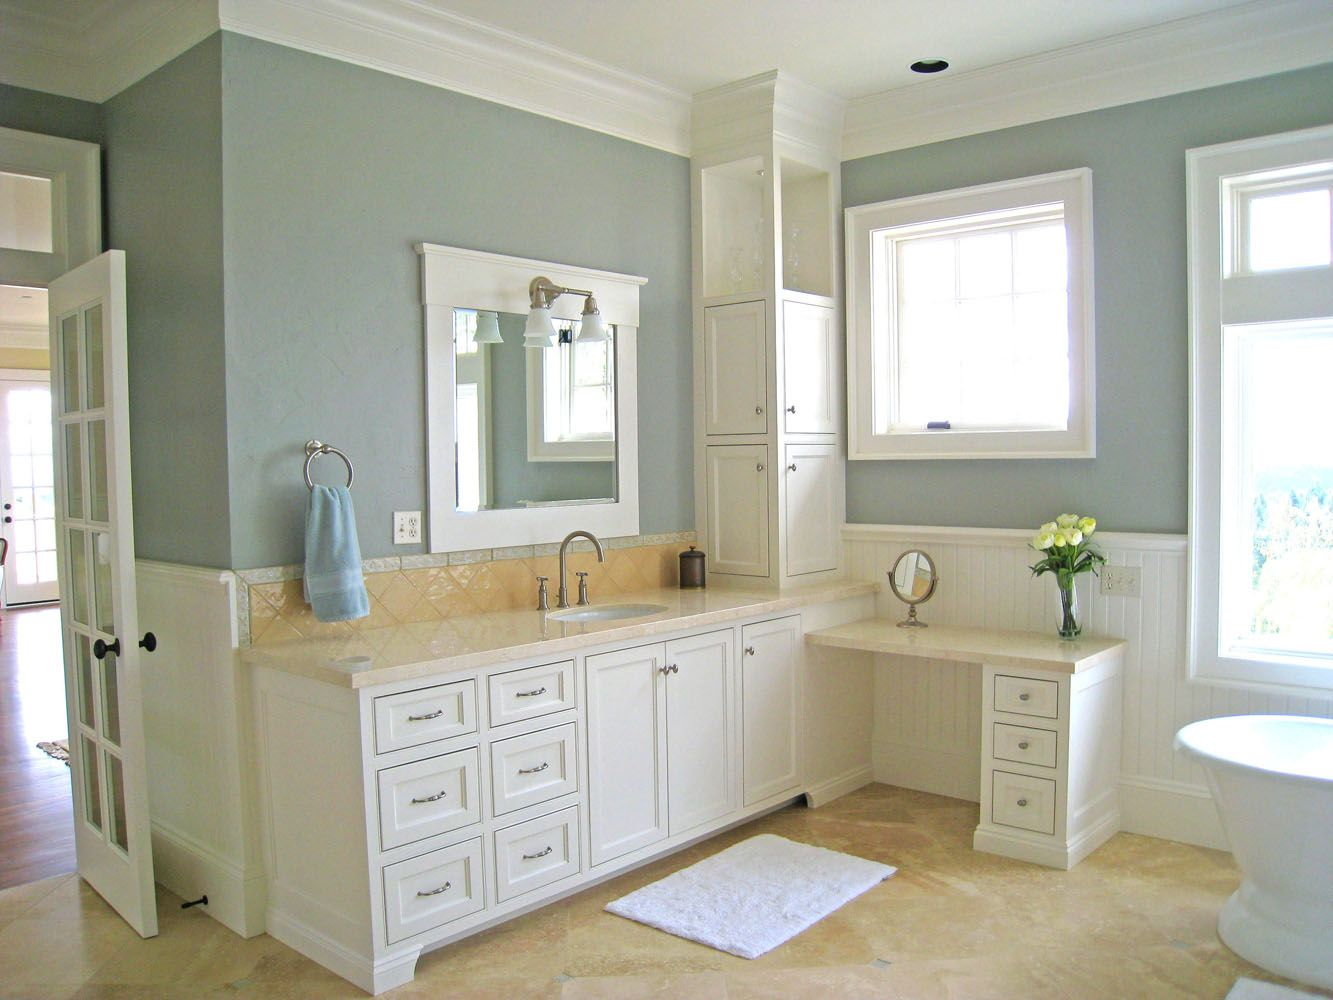 Light And Airy Bathroom Painting Ideas Ideas Interactive - What paint to use on bathroom cabinets for bathroom decor ideas